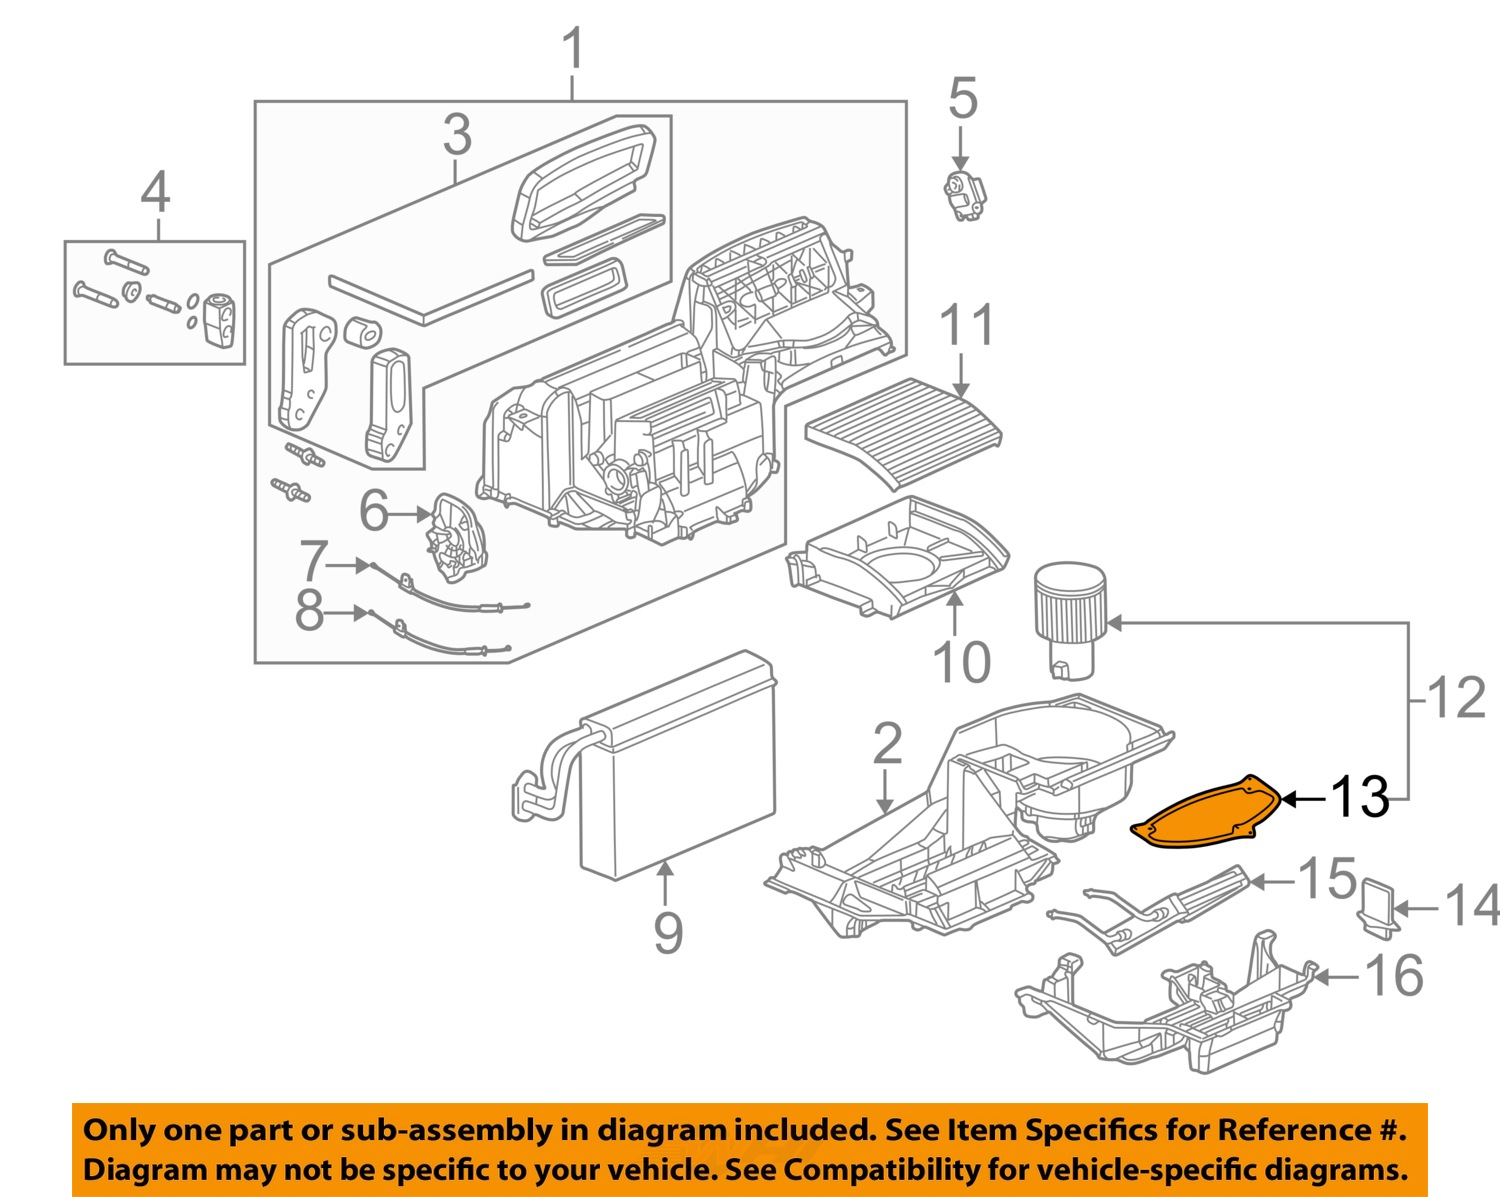 03 Saturn Ion Fuse Diagram  Solved Where Is The Fuel Fuse Located On 2003 Saturn Ion  Saturn Ion